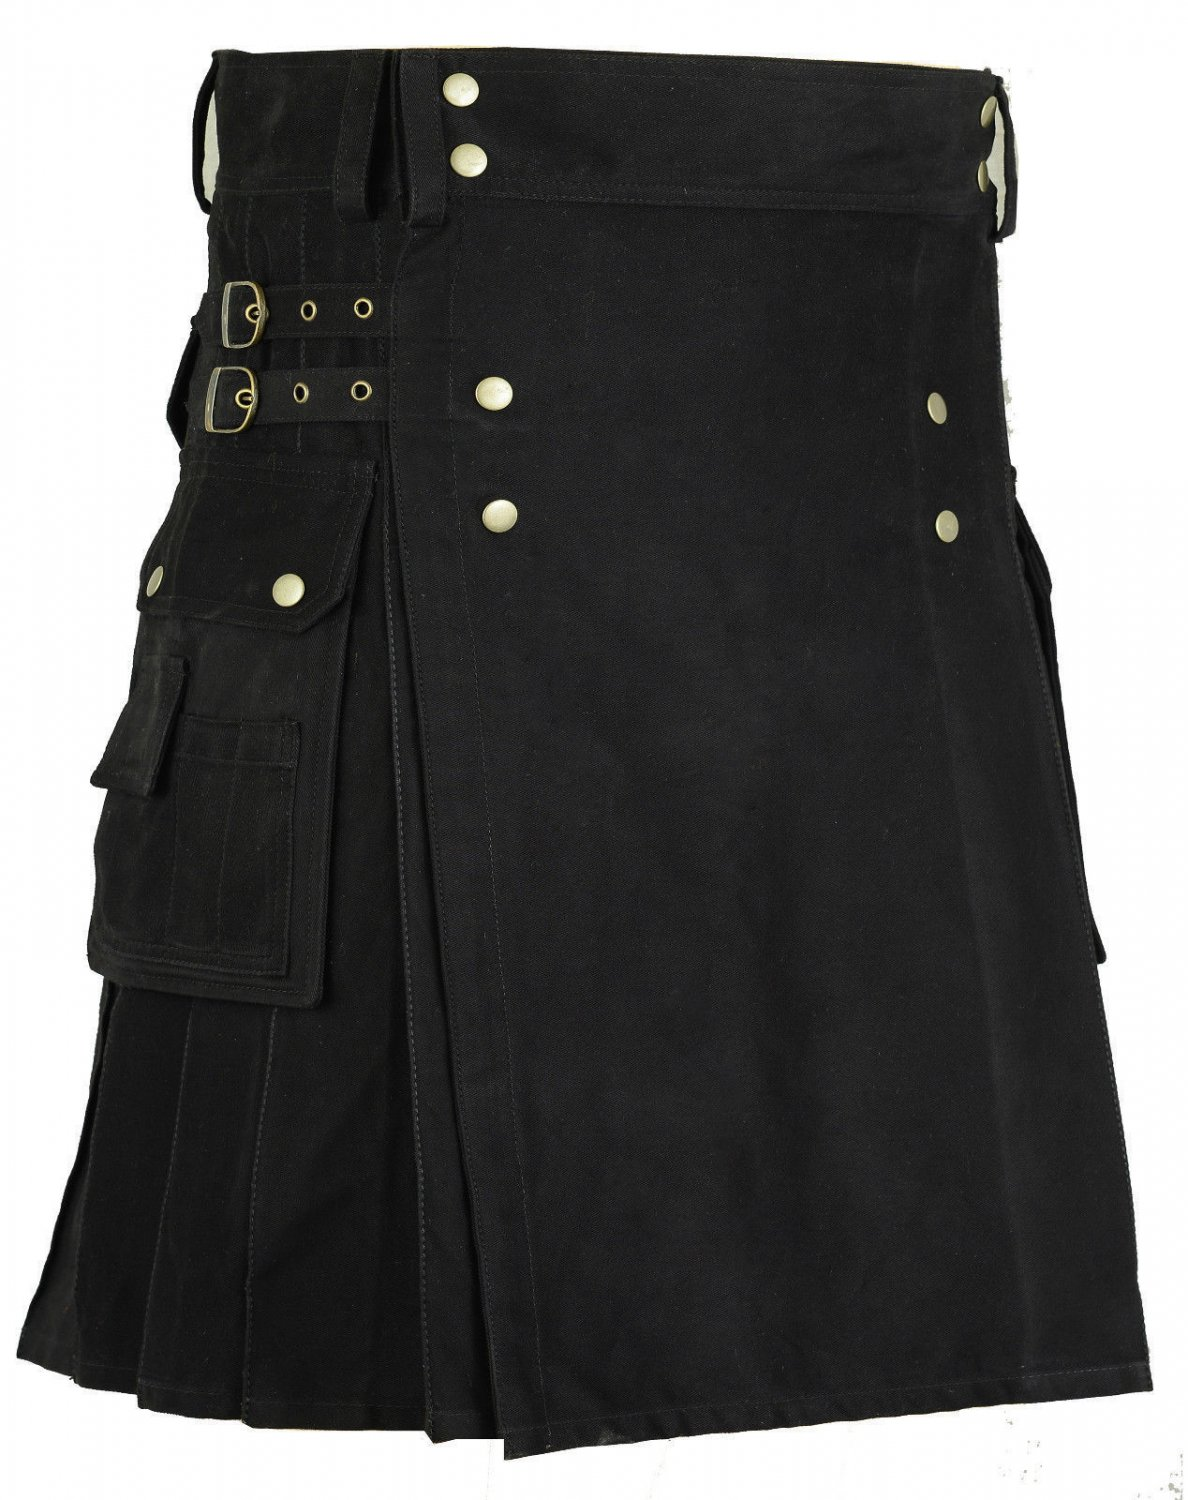 Size 48 Handmade Gothic Black Pure Cotton Kilt With Utility Side Cargo Pockets